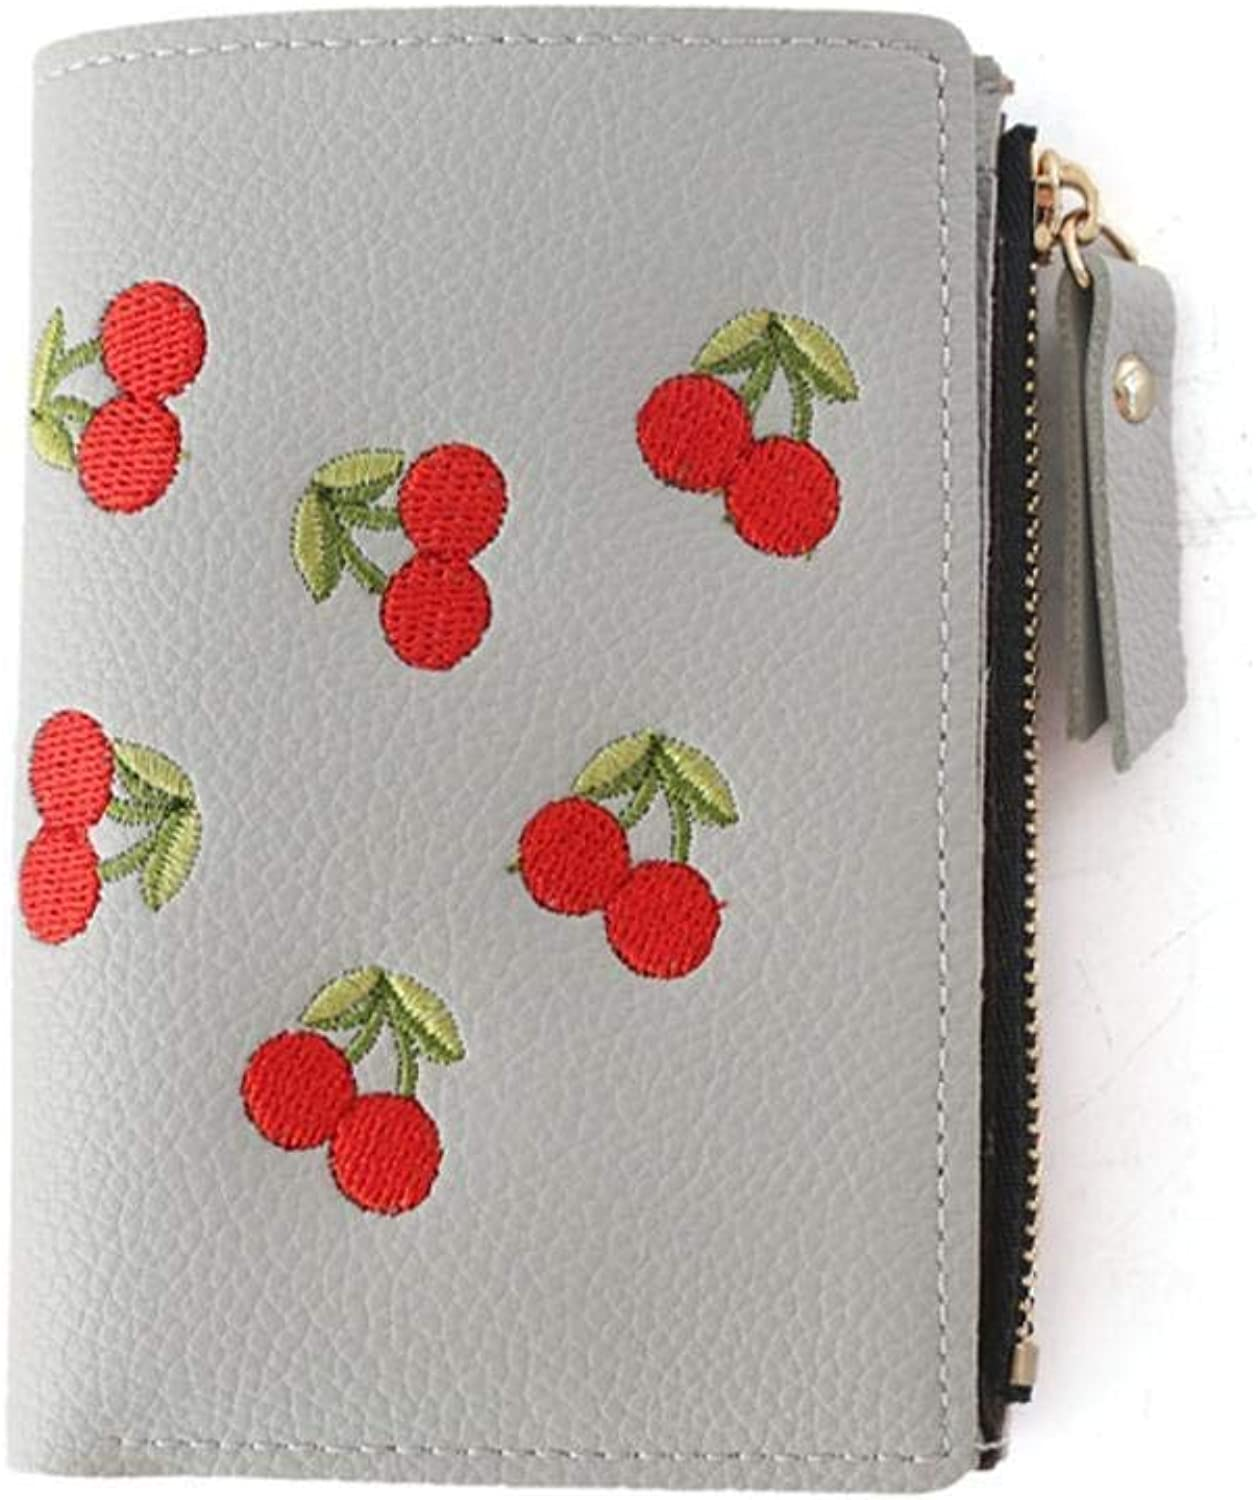 Girls Purse Women's Buckle Embroidery Short Small Clip Student Simple Fashion Wallet 9.5  12.5  3cm (color   B)